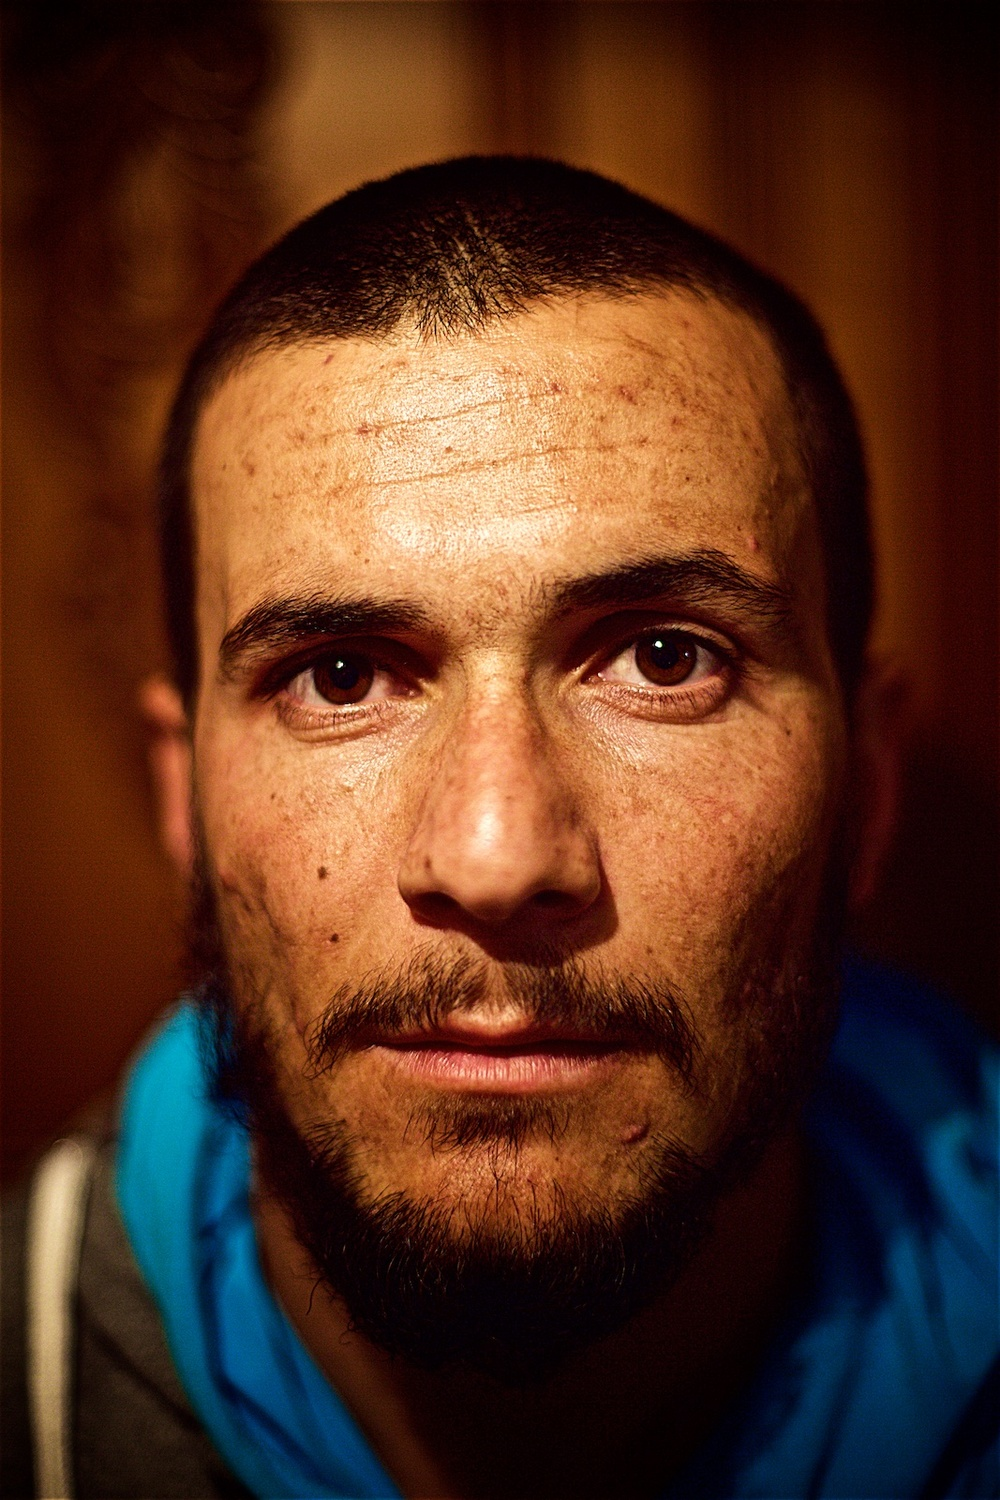 permanently-temporary-refugees-italy-rifugiati-italia-denis-bosnic-photography-portraits-12 (1).jpg